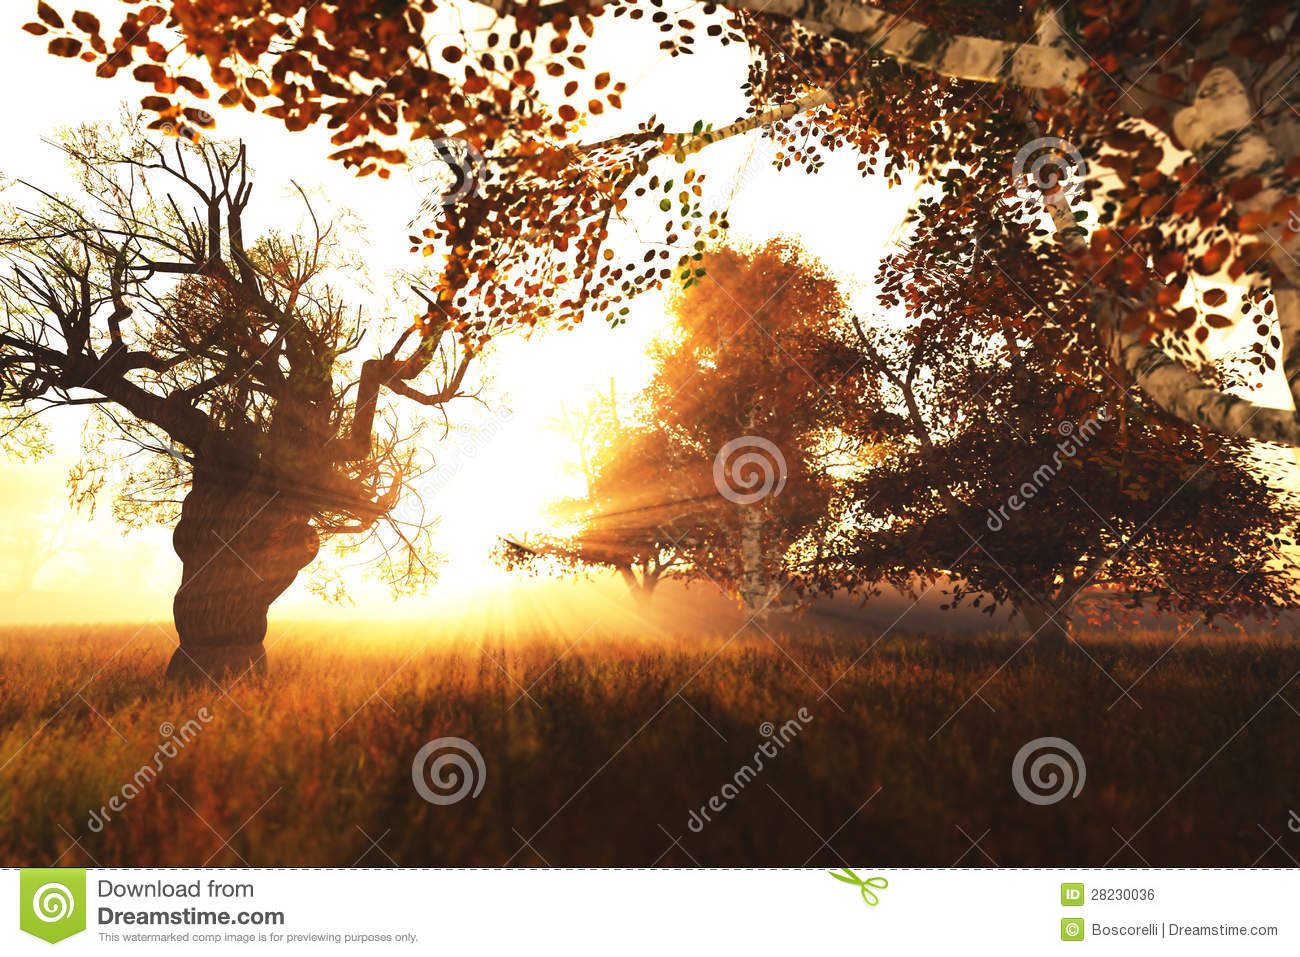 More similar stock images of 3d landscape with fall tree - Beautiful Autumn Forest Nature Scene 3d Render 1 Royalty Free Stock Image